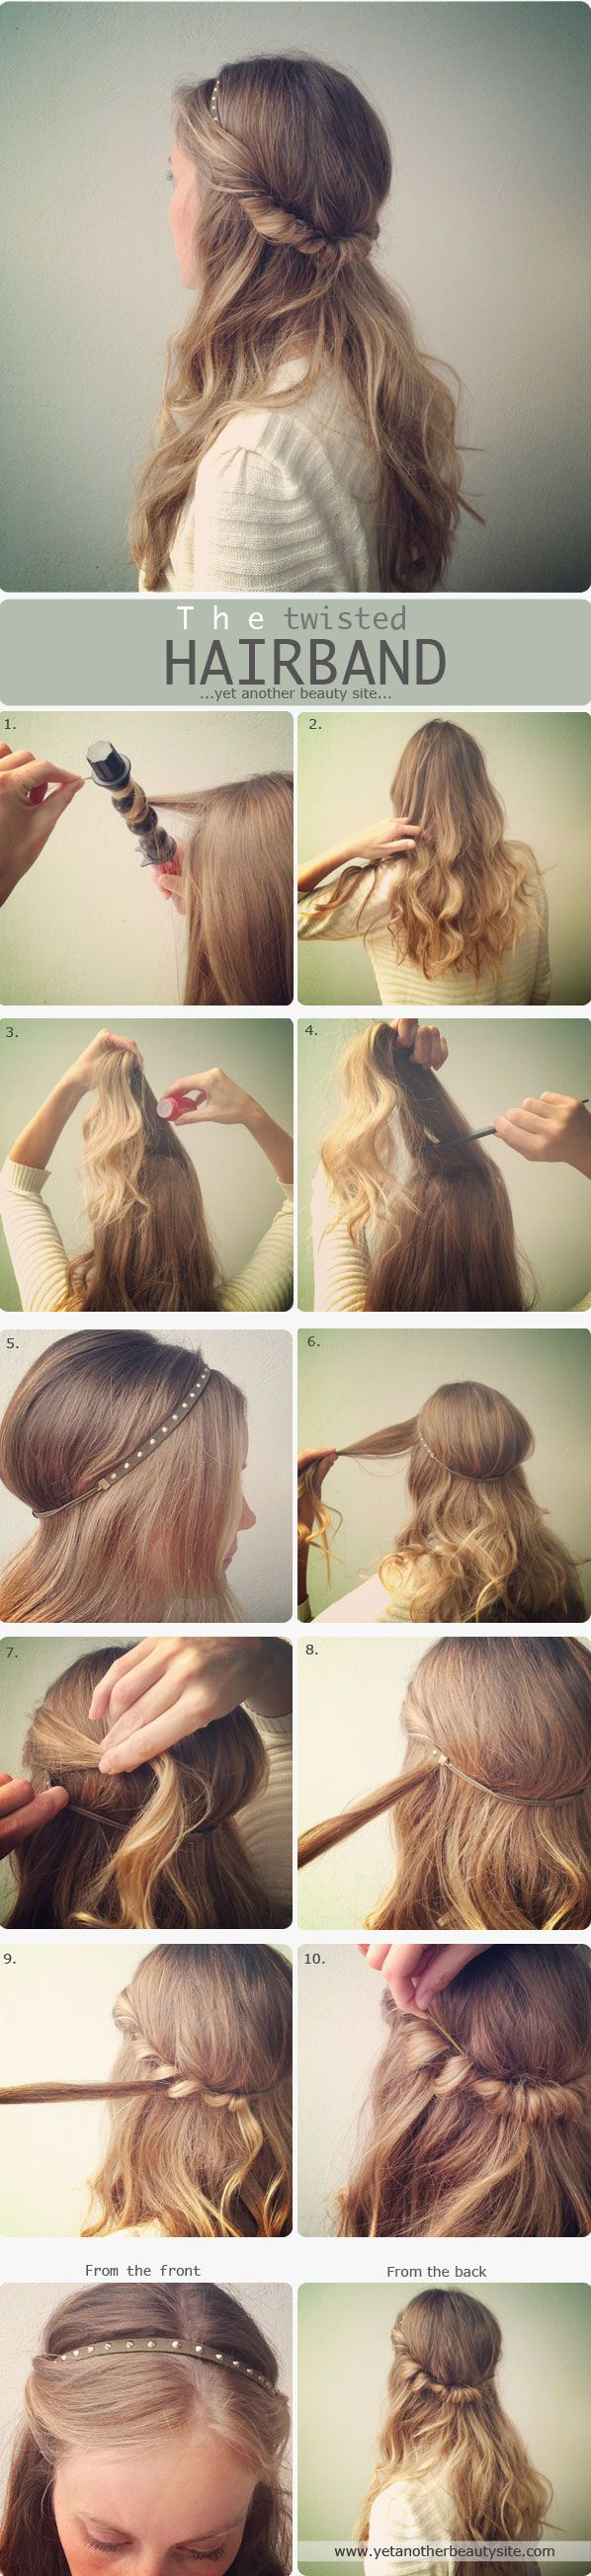 Yet another beauty site #hairtutorials #hair